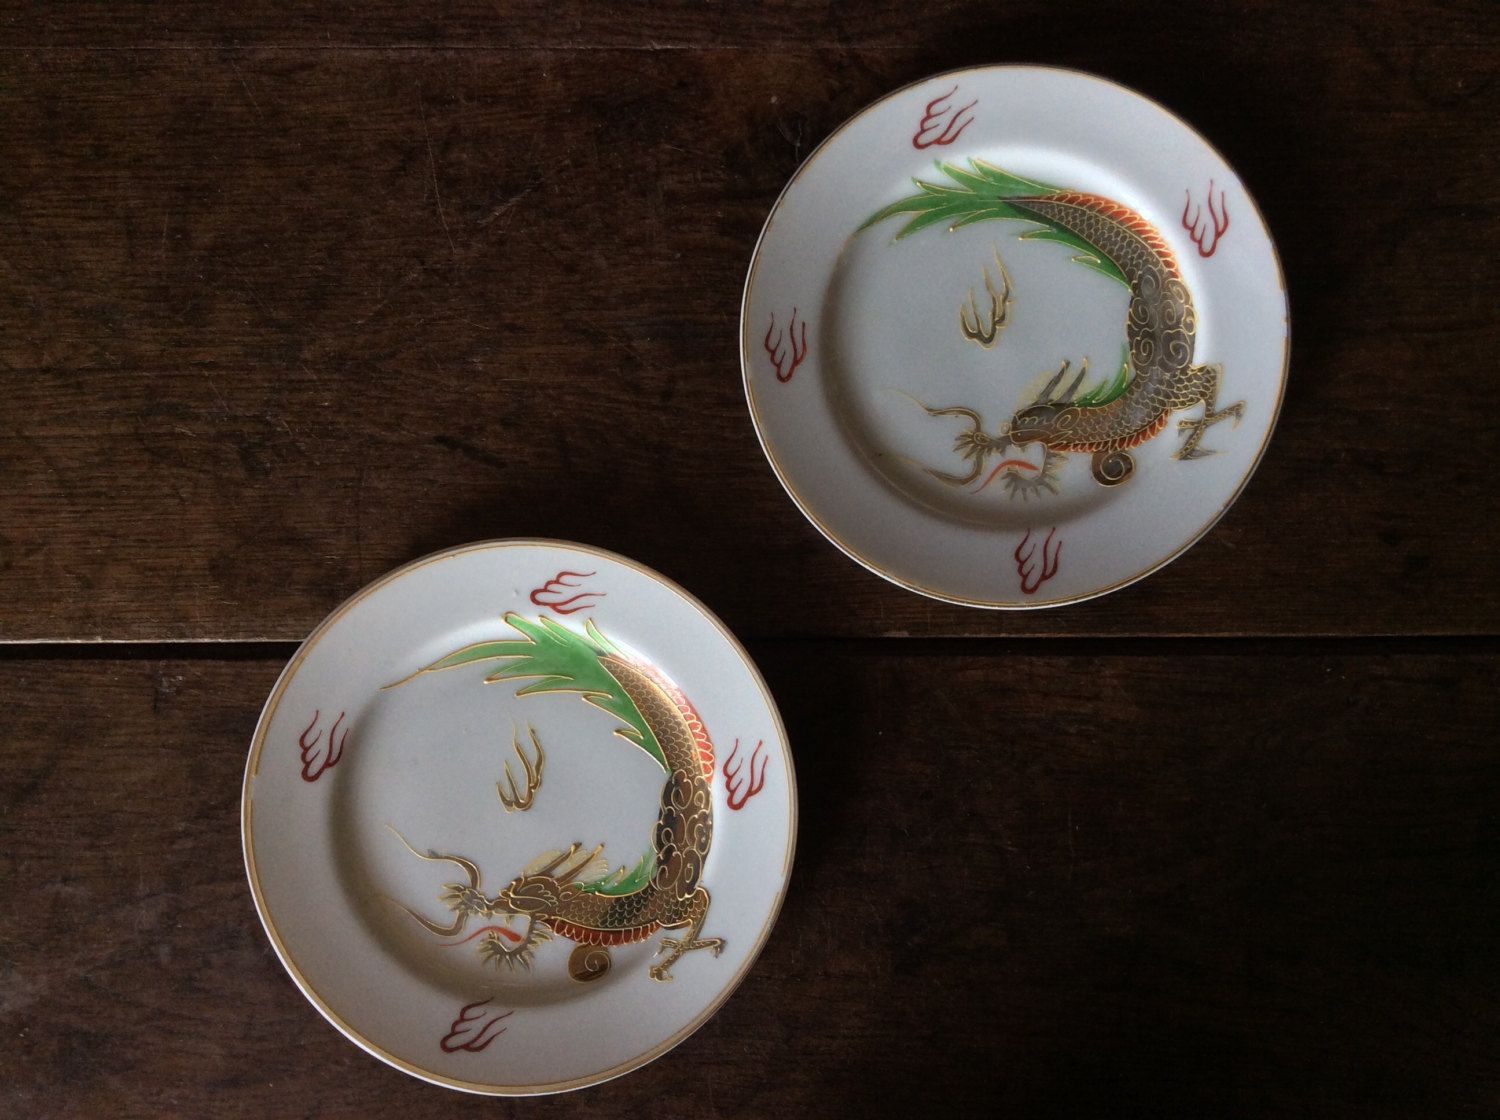 Vintage Japanese White Metalic Dragon Plates Set of 2 Side Lunch Plate Saucer Purchase in store & Vintage Japanese White Metalic Dragon Plates Set of 2 Side Lunch ...